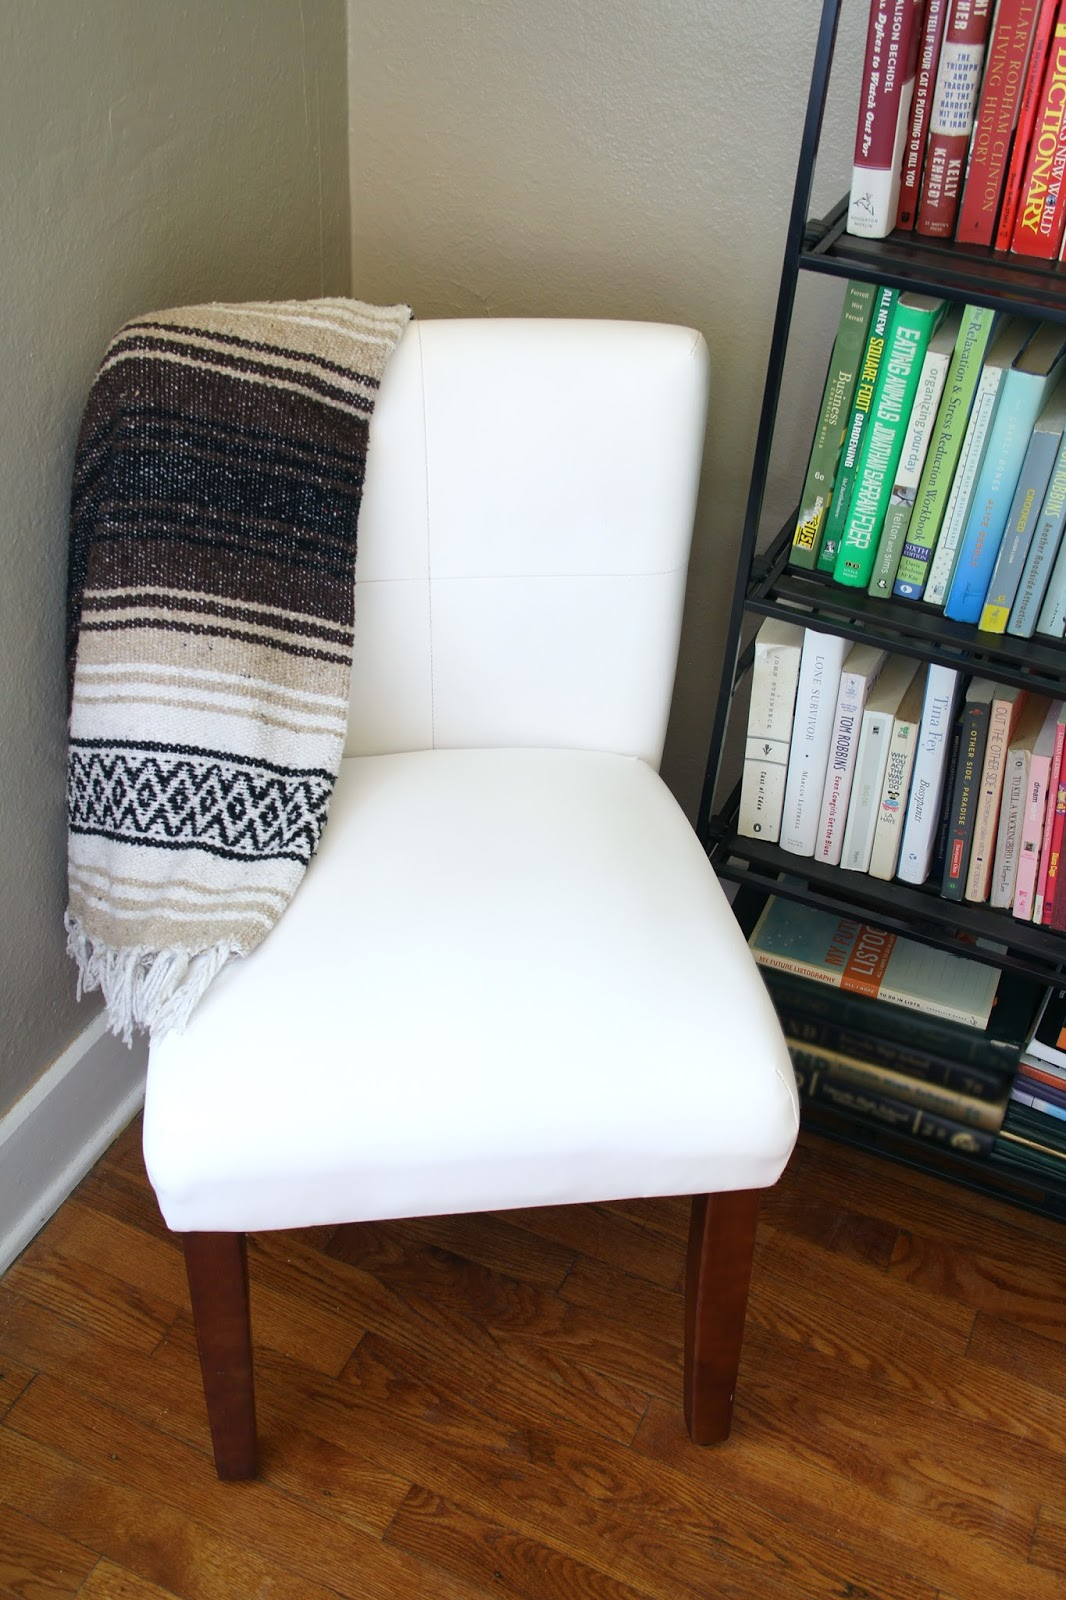 How to paint a vinyl chair - yes, it's totally doable!